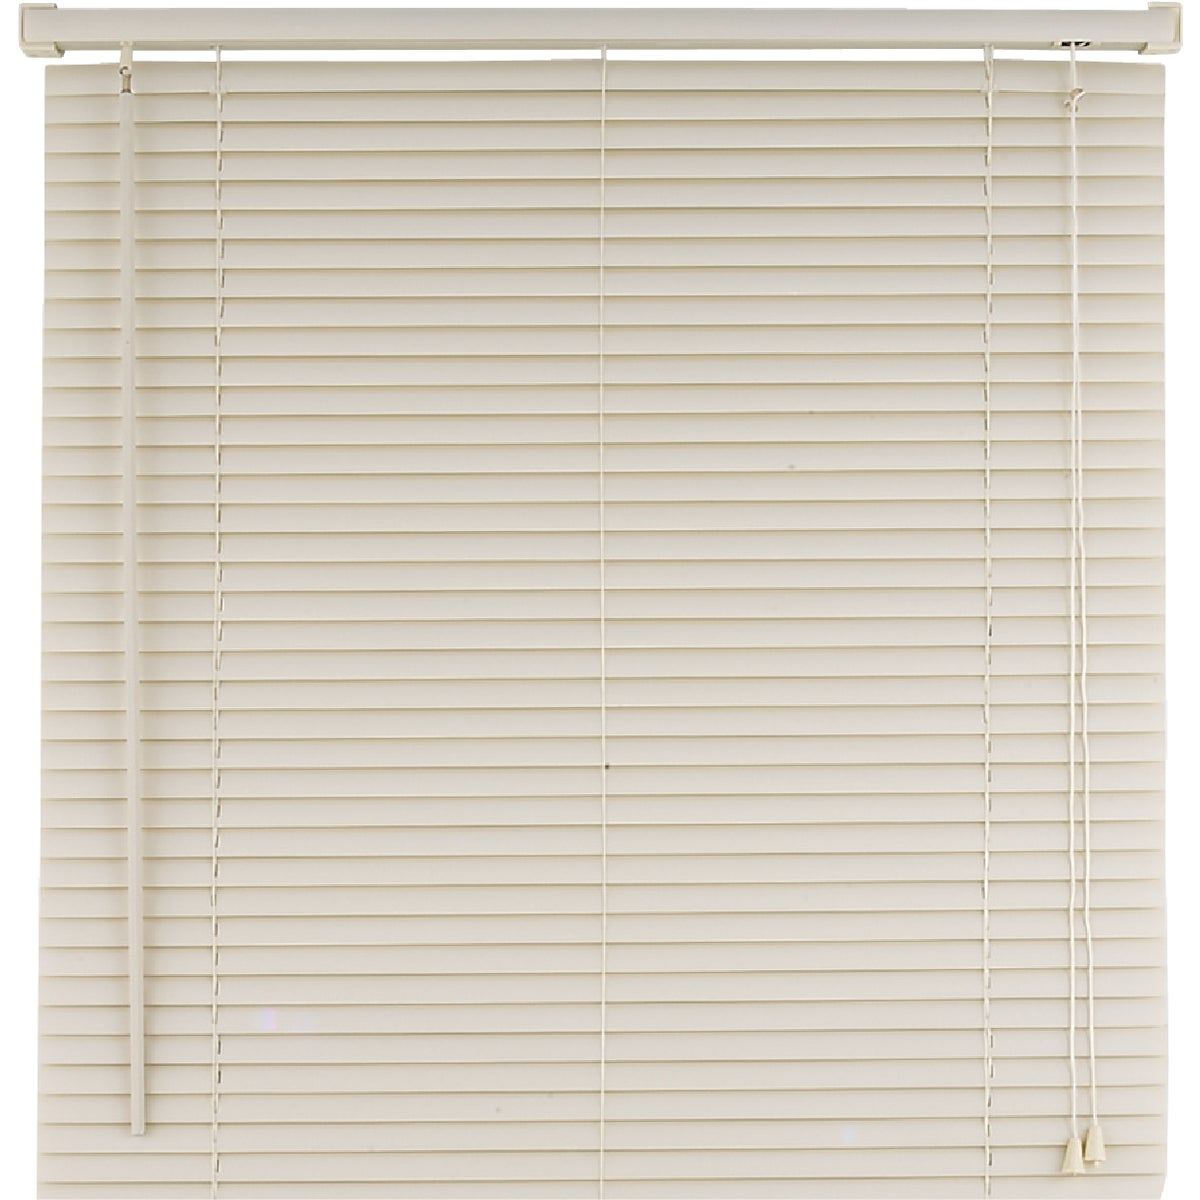 43X64 ALABASTER BLIND - 15226 by Lotus Wind Incom